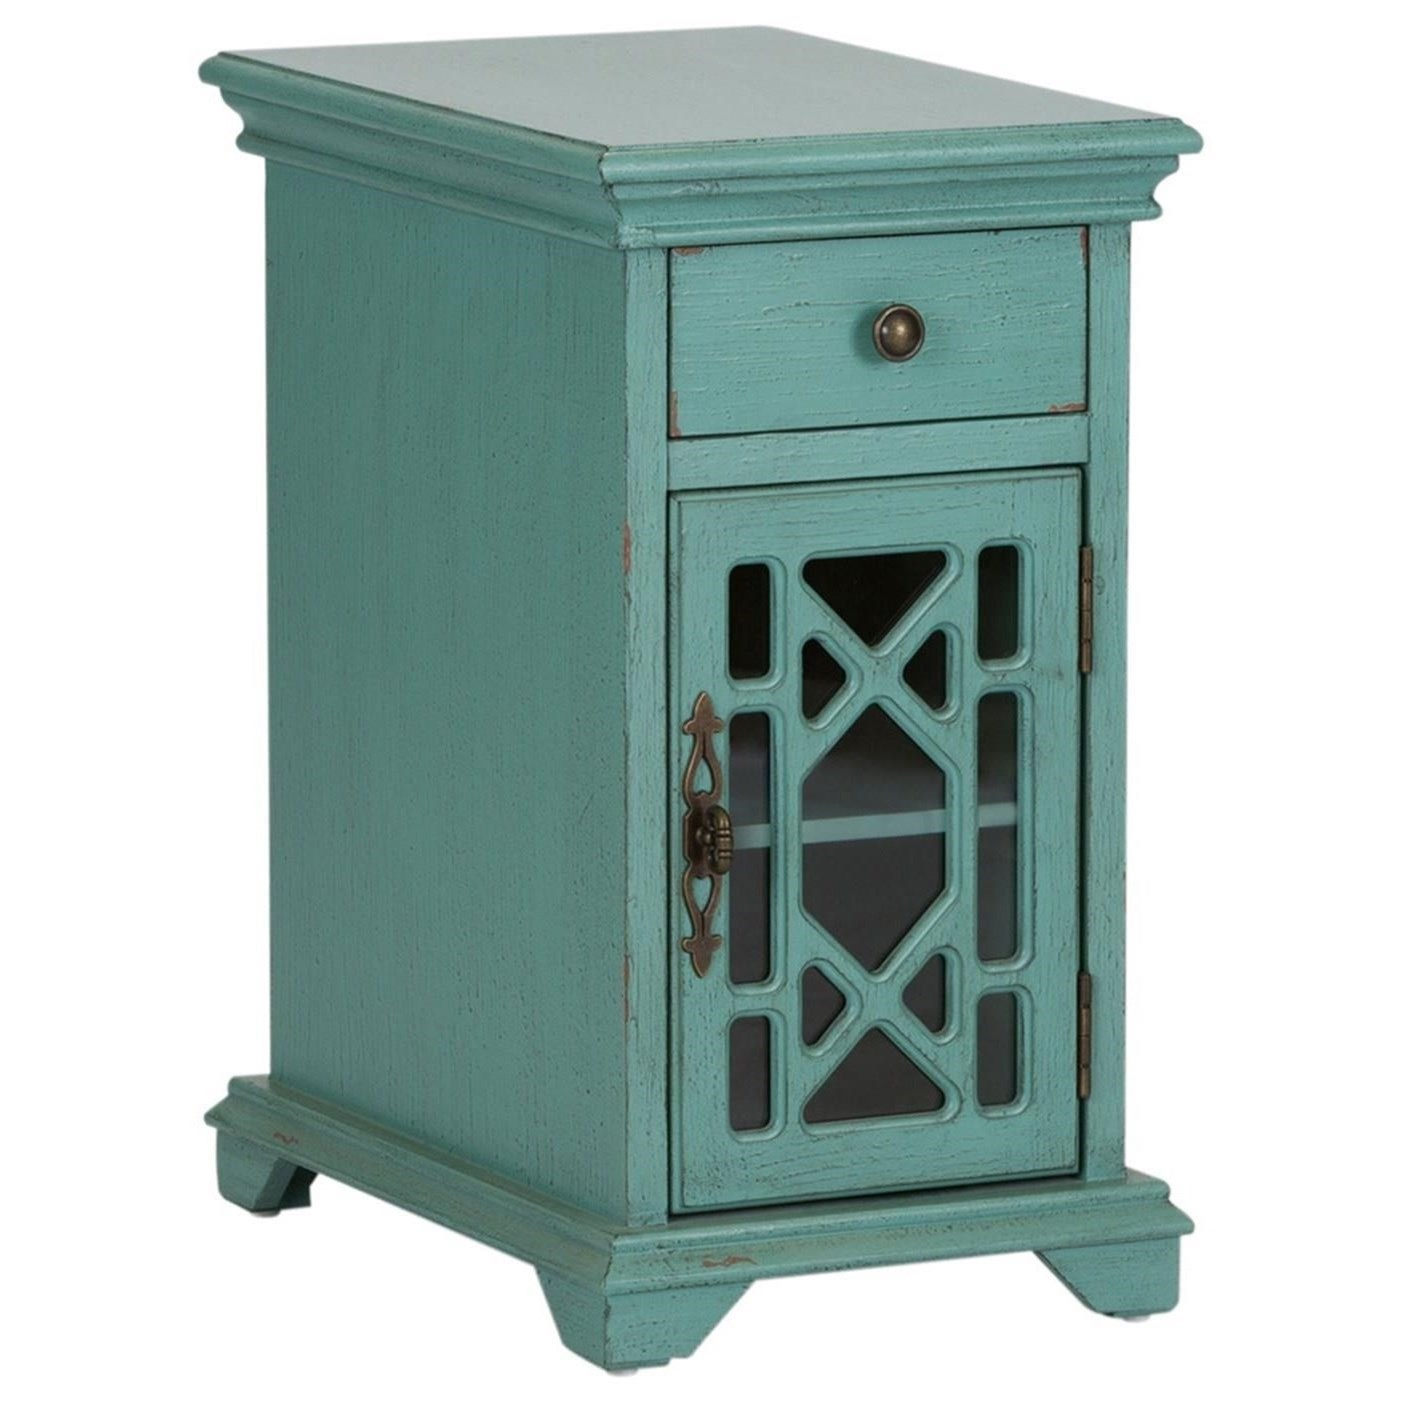 cottage drawer door accent cabinet liberty furniture wolf products color ashvale table with drawers and doors small inches high west elm patio covers canadian tire nautical light